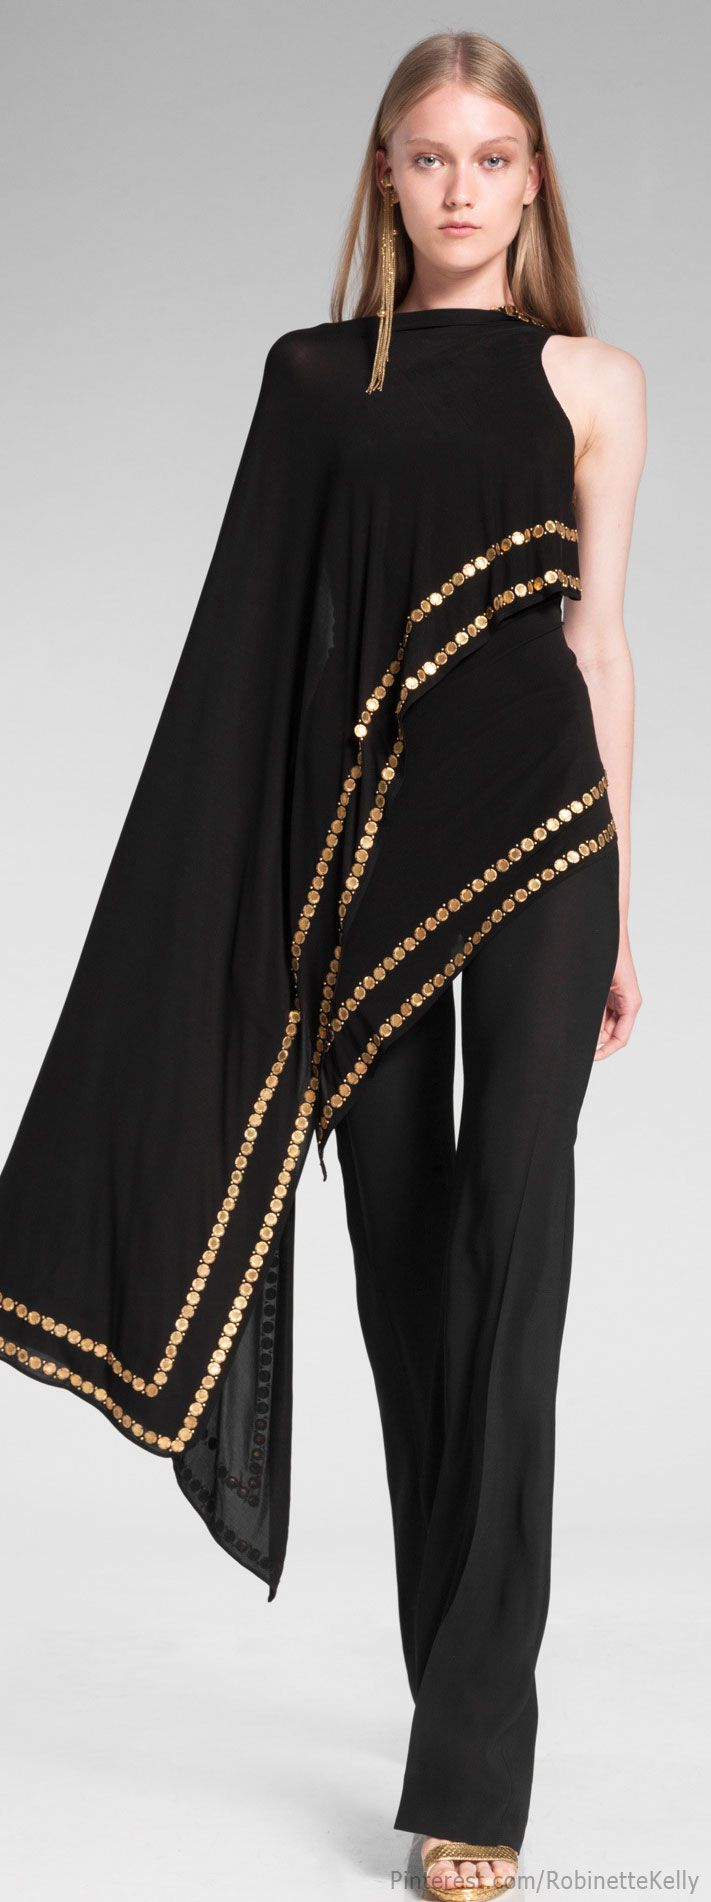 Donna Karan Resort 2014 - very belly dancer chic!